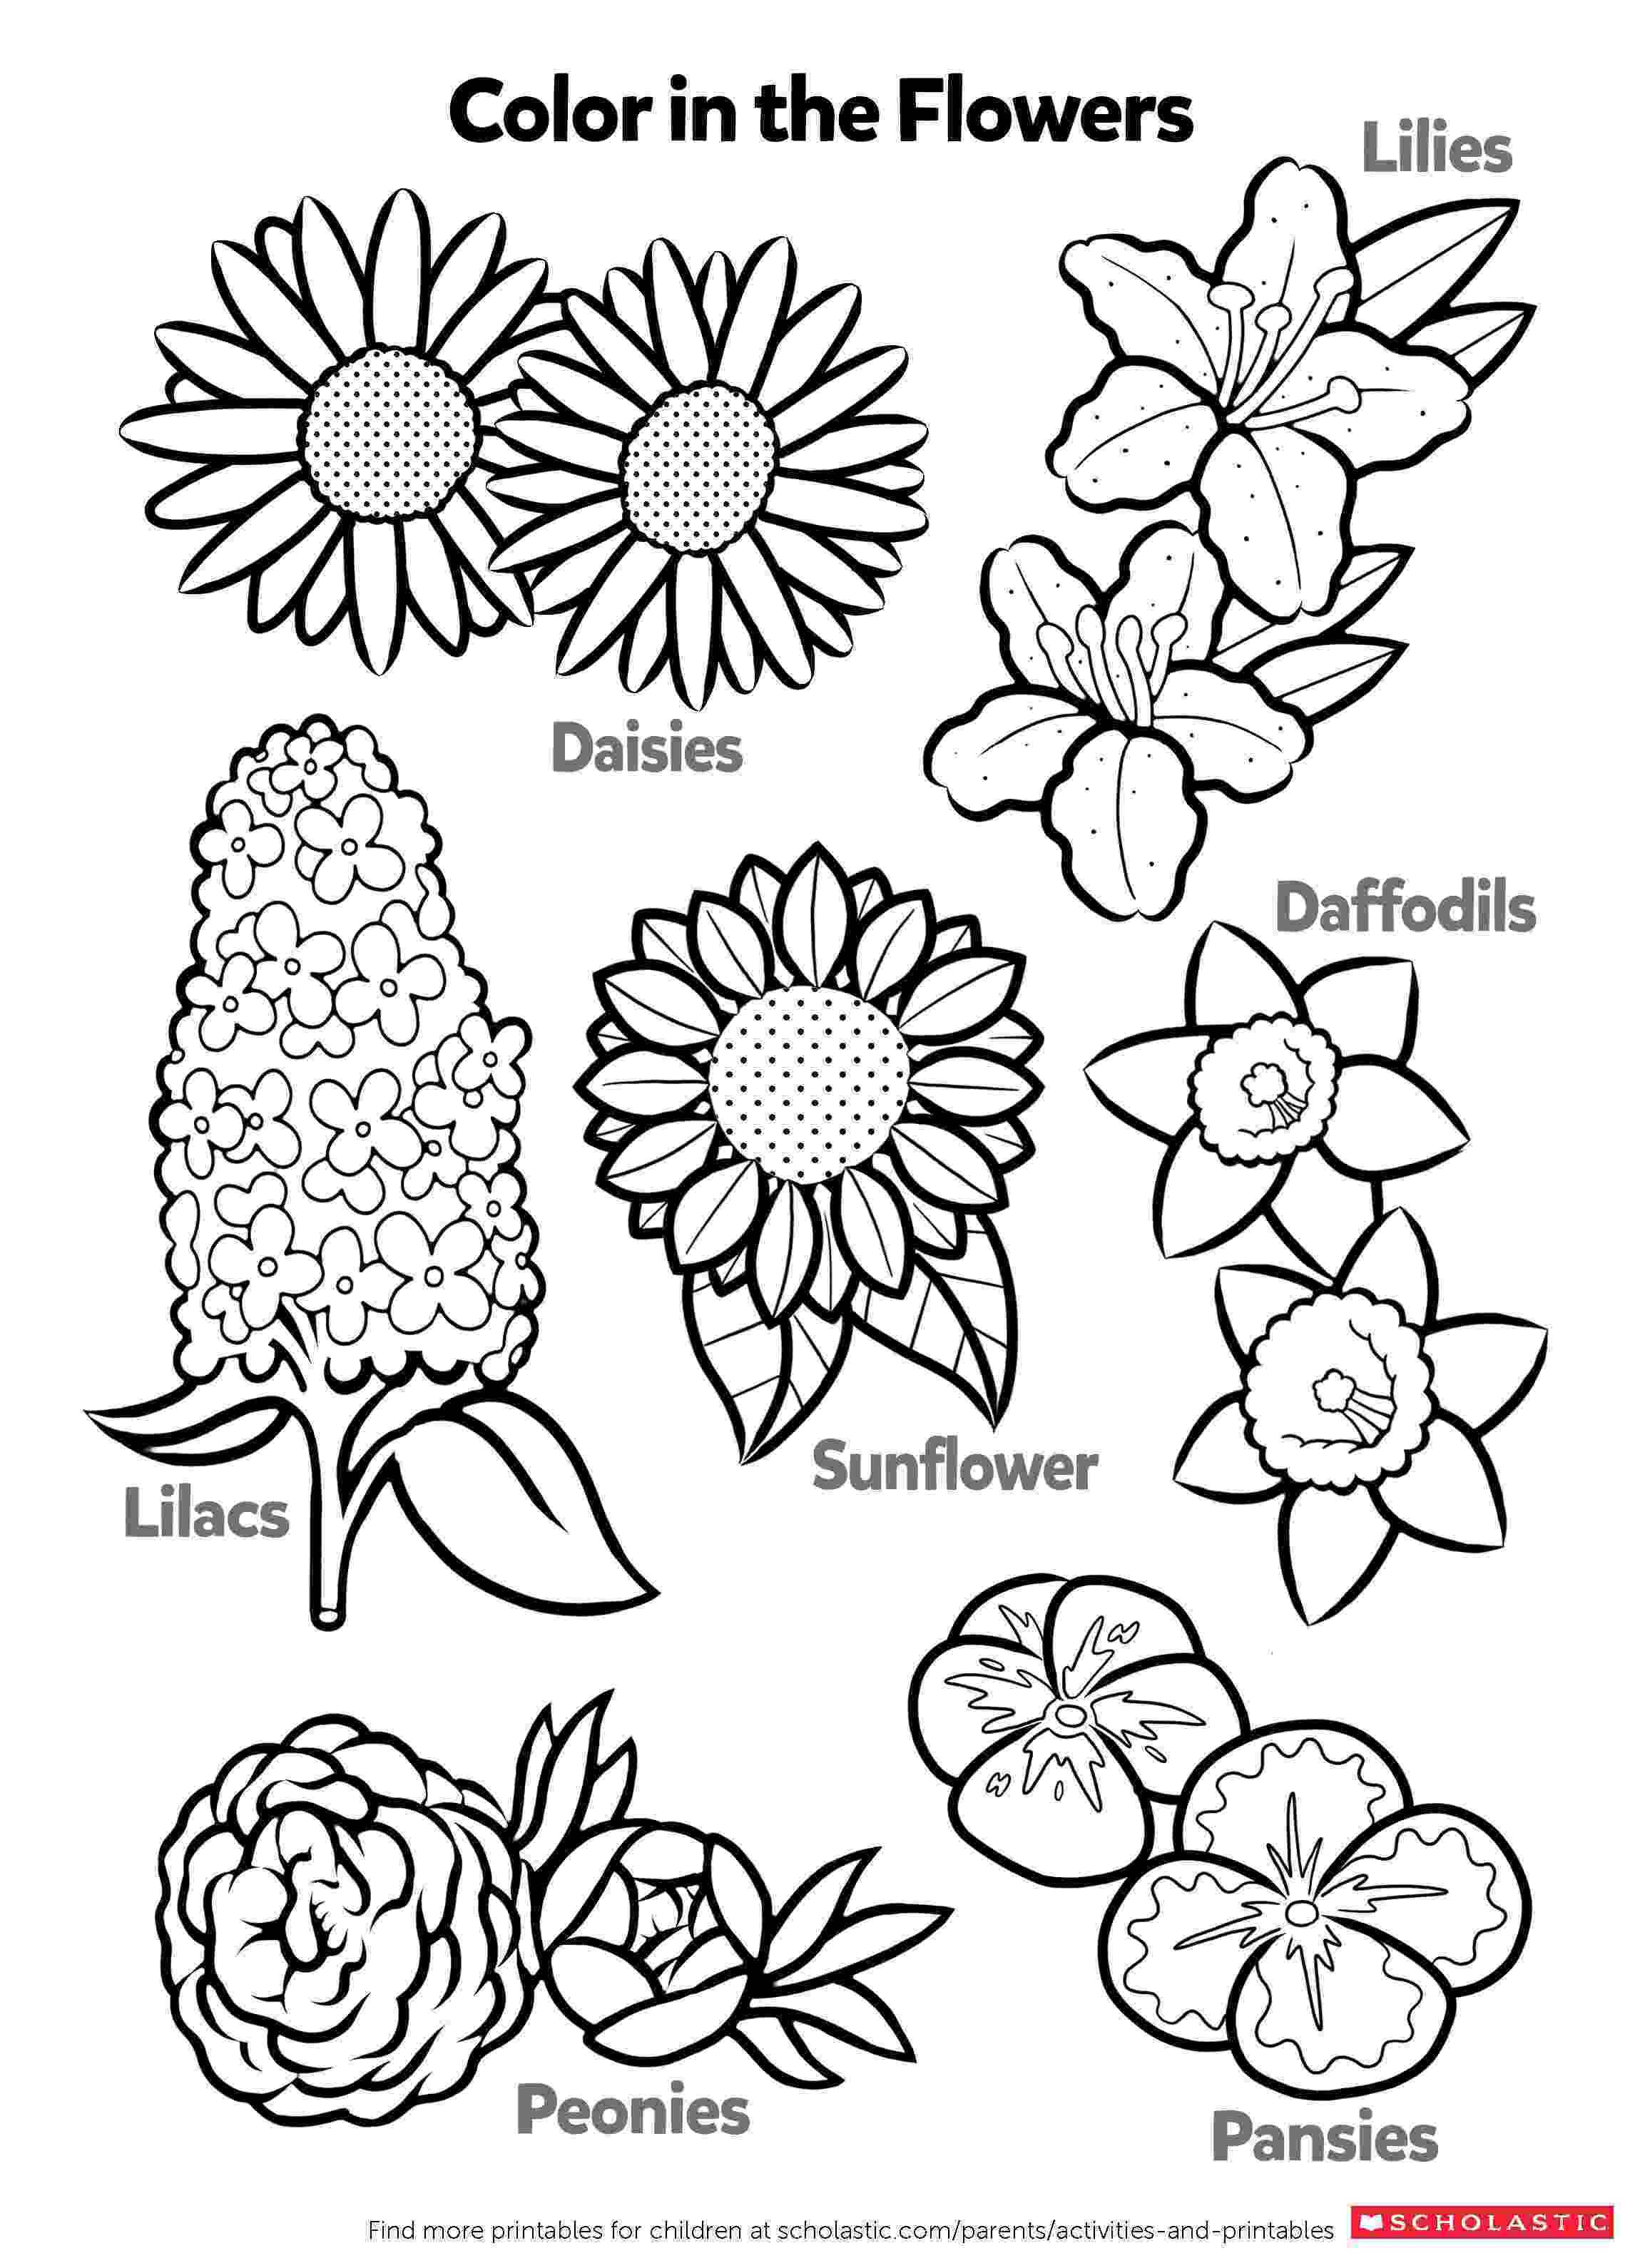 printable coloring pages plants learn about flowers by coloring worksheets printables coloring plants printable pages